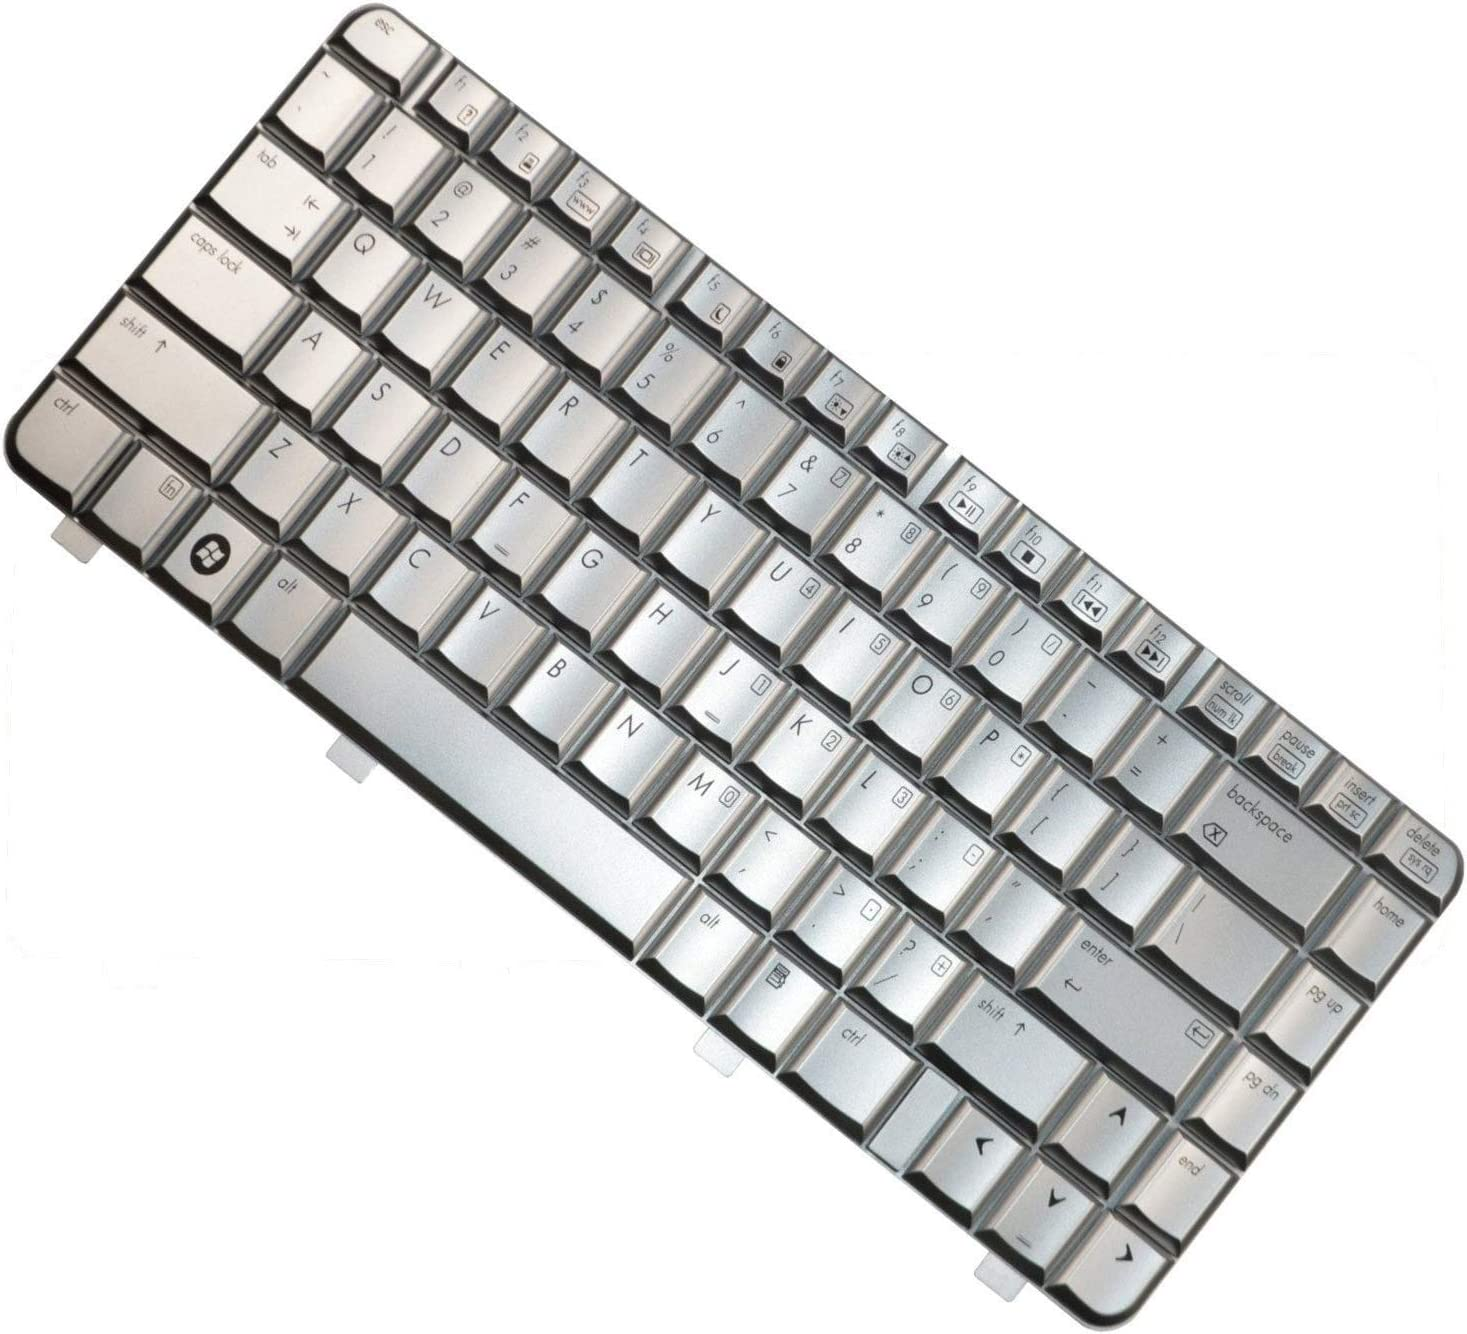 HQRP Keyboard Works with HP Pavilion DV4 Laptop/Notebook Replacement